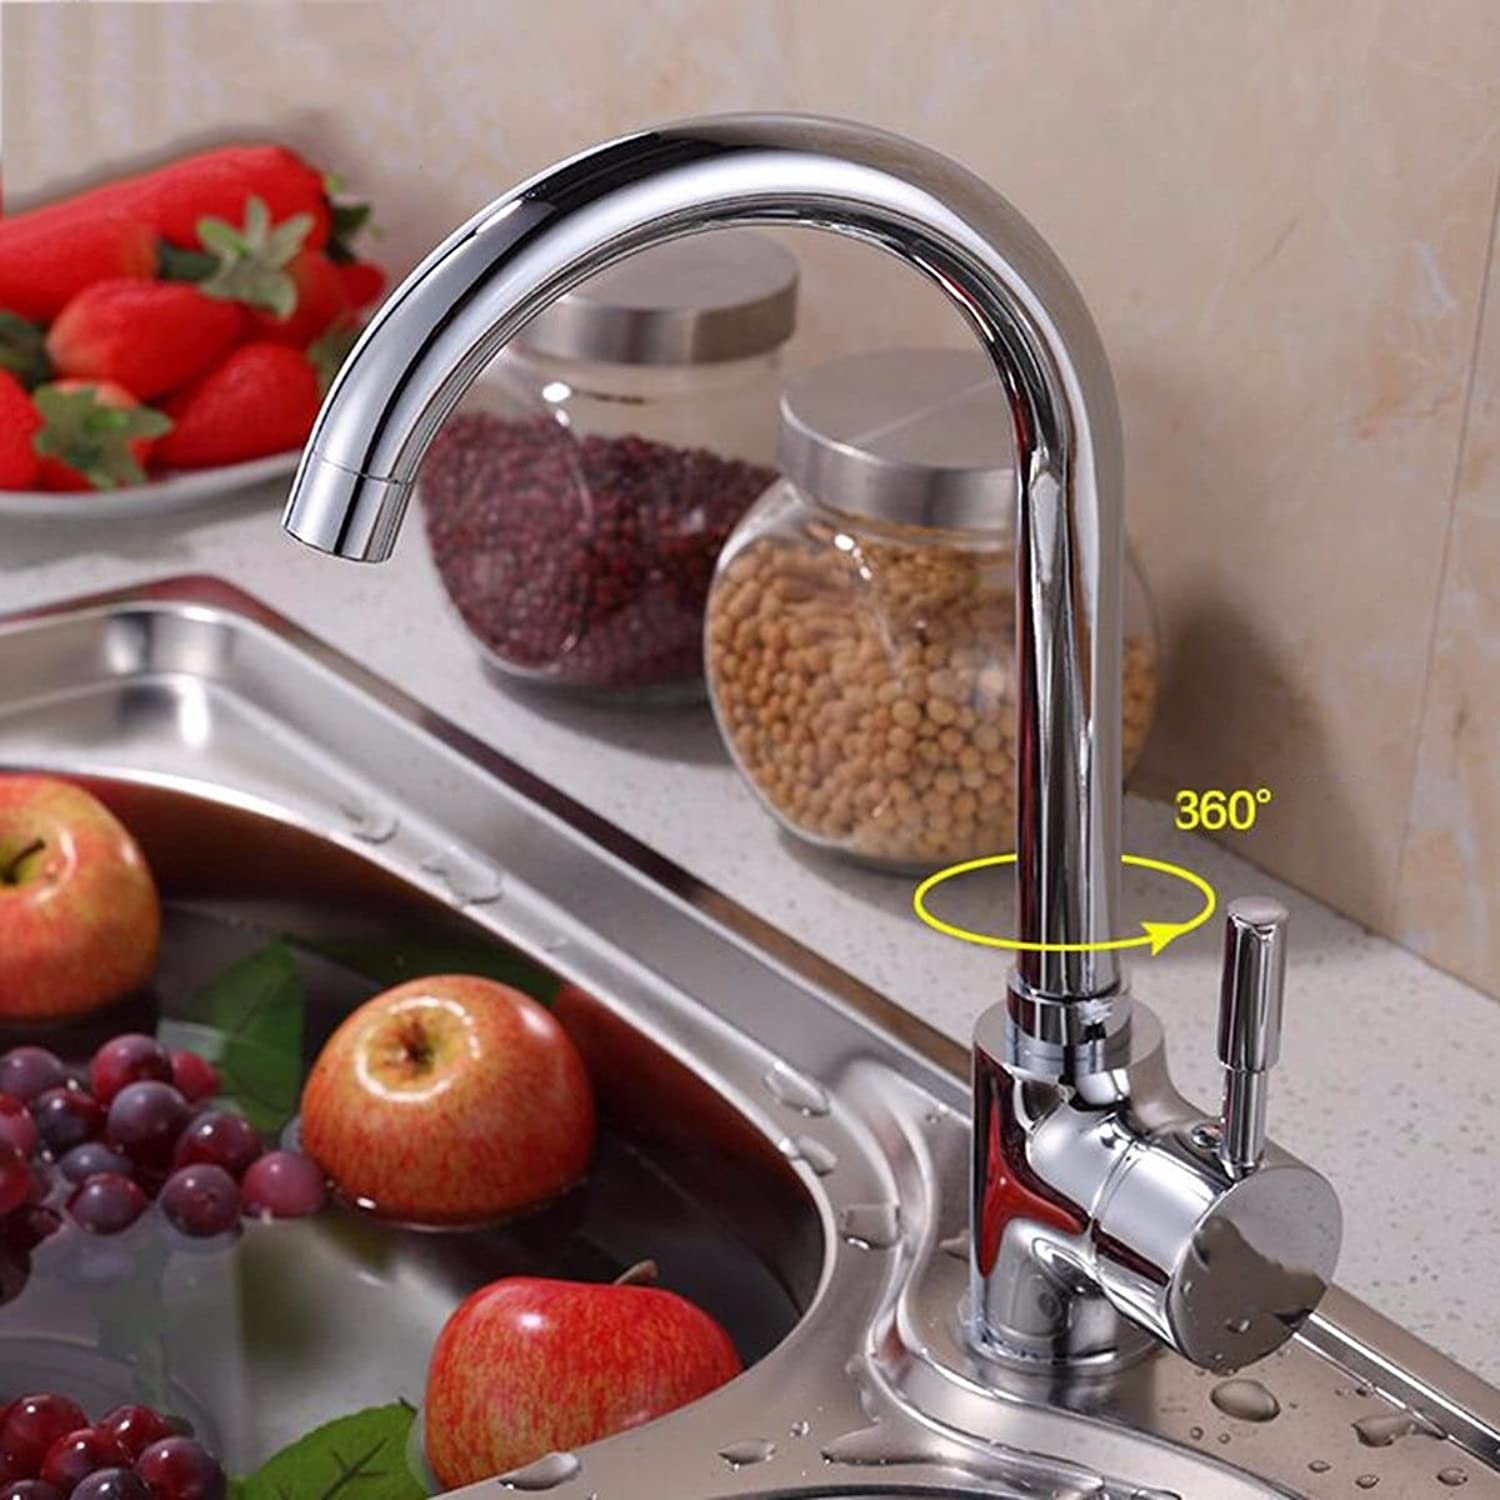 XPYFaucet Faucet Tap Taps Kitchen hot and cold copper redatable sink sink balcony kitchen heightening, A